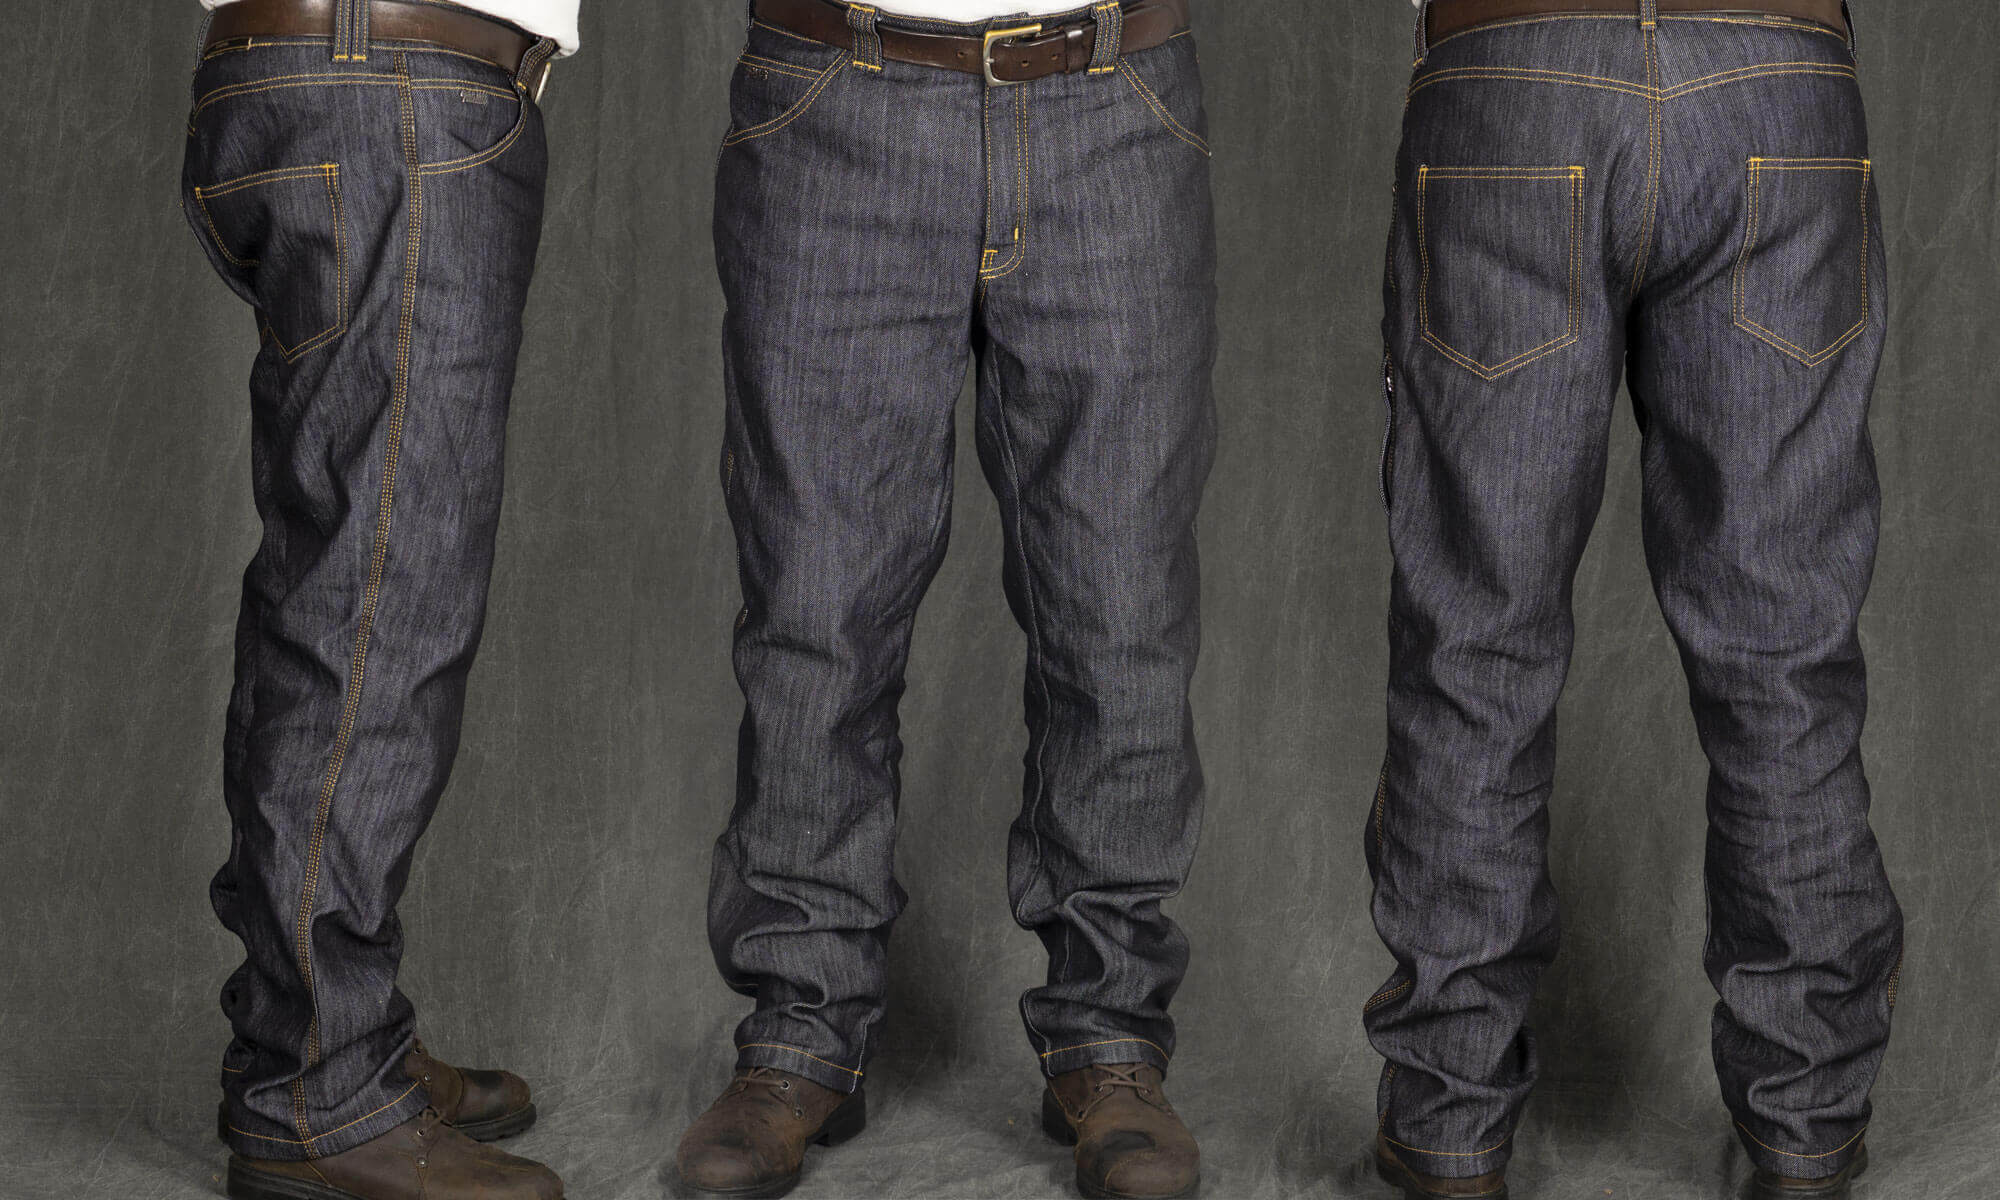 Trilobite 1860 Ton-Up Jeans 3 Different Angles